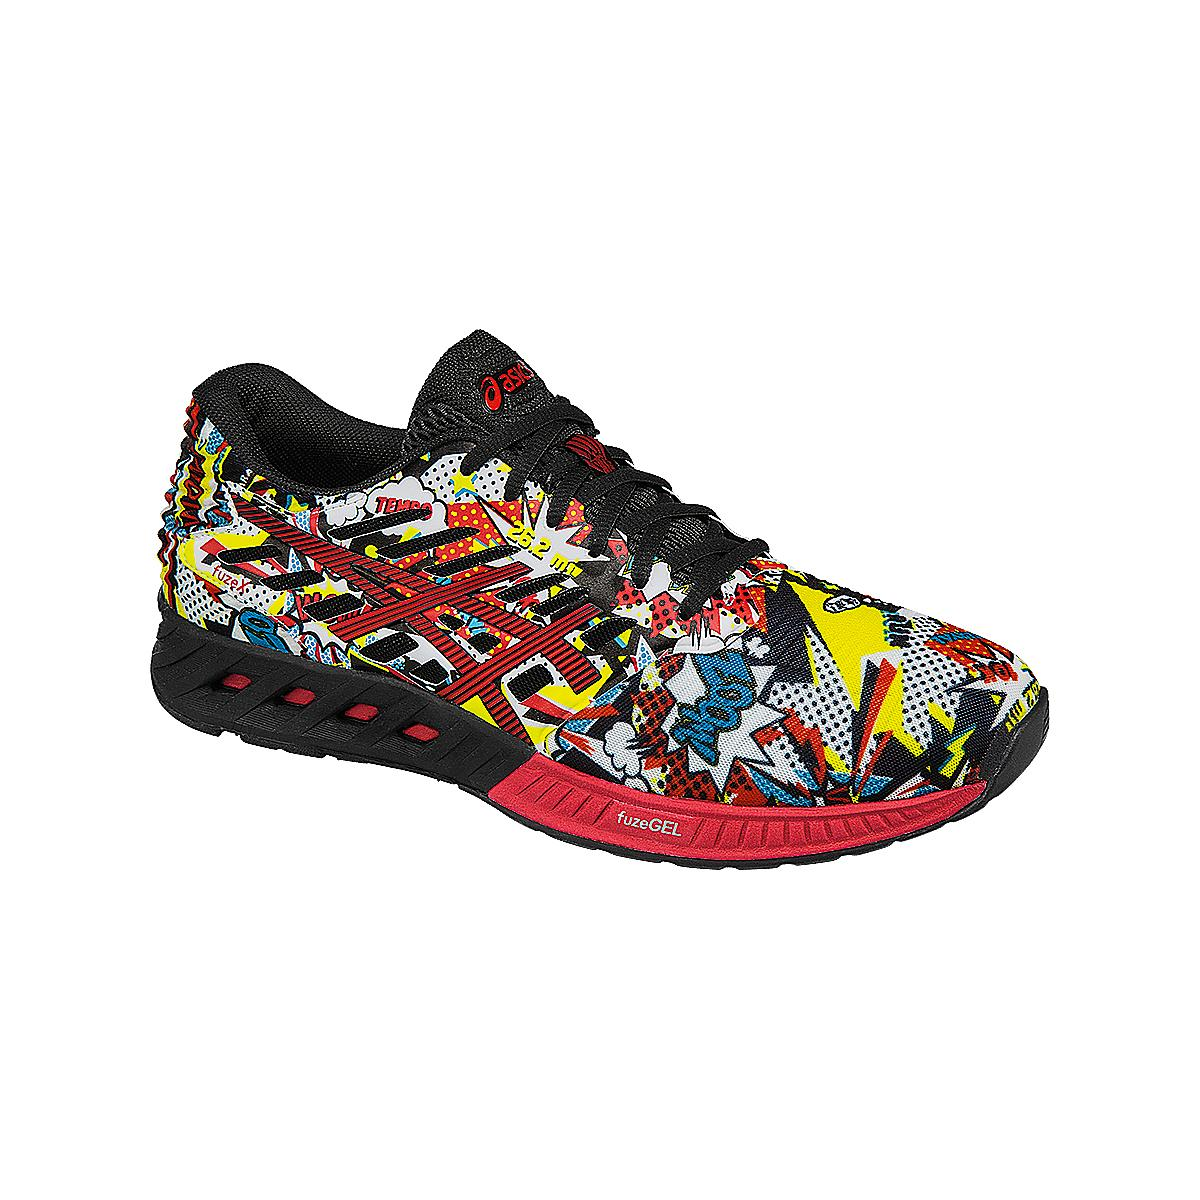 Mens ASICS fuzeX Comic Running Shoe at Road Runner Sports